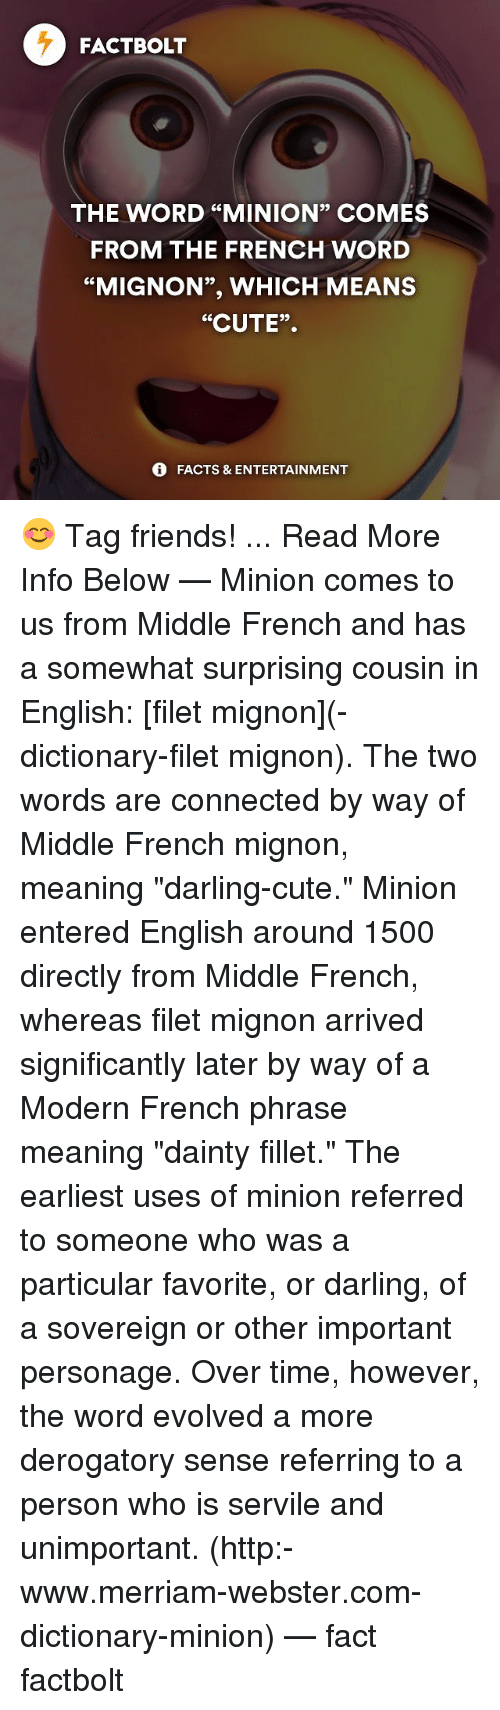 """merriam webster: FACT BOLT  THE WORD """"MINION"""" COMES  FROM THE FRENCH WORD  """"MIGNON"""", WHICH MEANS  """"CUTE"""".  FACTS & ENTERTAINMENT 😊 Tag friends! ... Read More Info Below — Minion comes to us from Middle French and has a somewhat surprising cousin in English: [filet mignon](-dictionary-filet mignon). The two words are connected by way of Middle French mignon, meaning """"darling-cute."""" Minion entered English around 1500 directly from Middle French, whereas filet mignon arrived significantly later by way of a Modern French phrase meaning """"dainty fillet."""" The earliest uses of minion referred to someone who was a particular favorite, or darling, of a sovereign or other important personage. Over time, however, the word evolved a more derogatory sense referring to a person who is servile and unimportant. (http:-www.merriam-webster.com-dictionary-minion) — fact factbolt"""